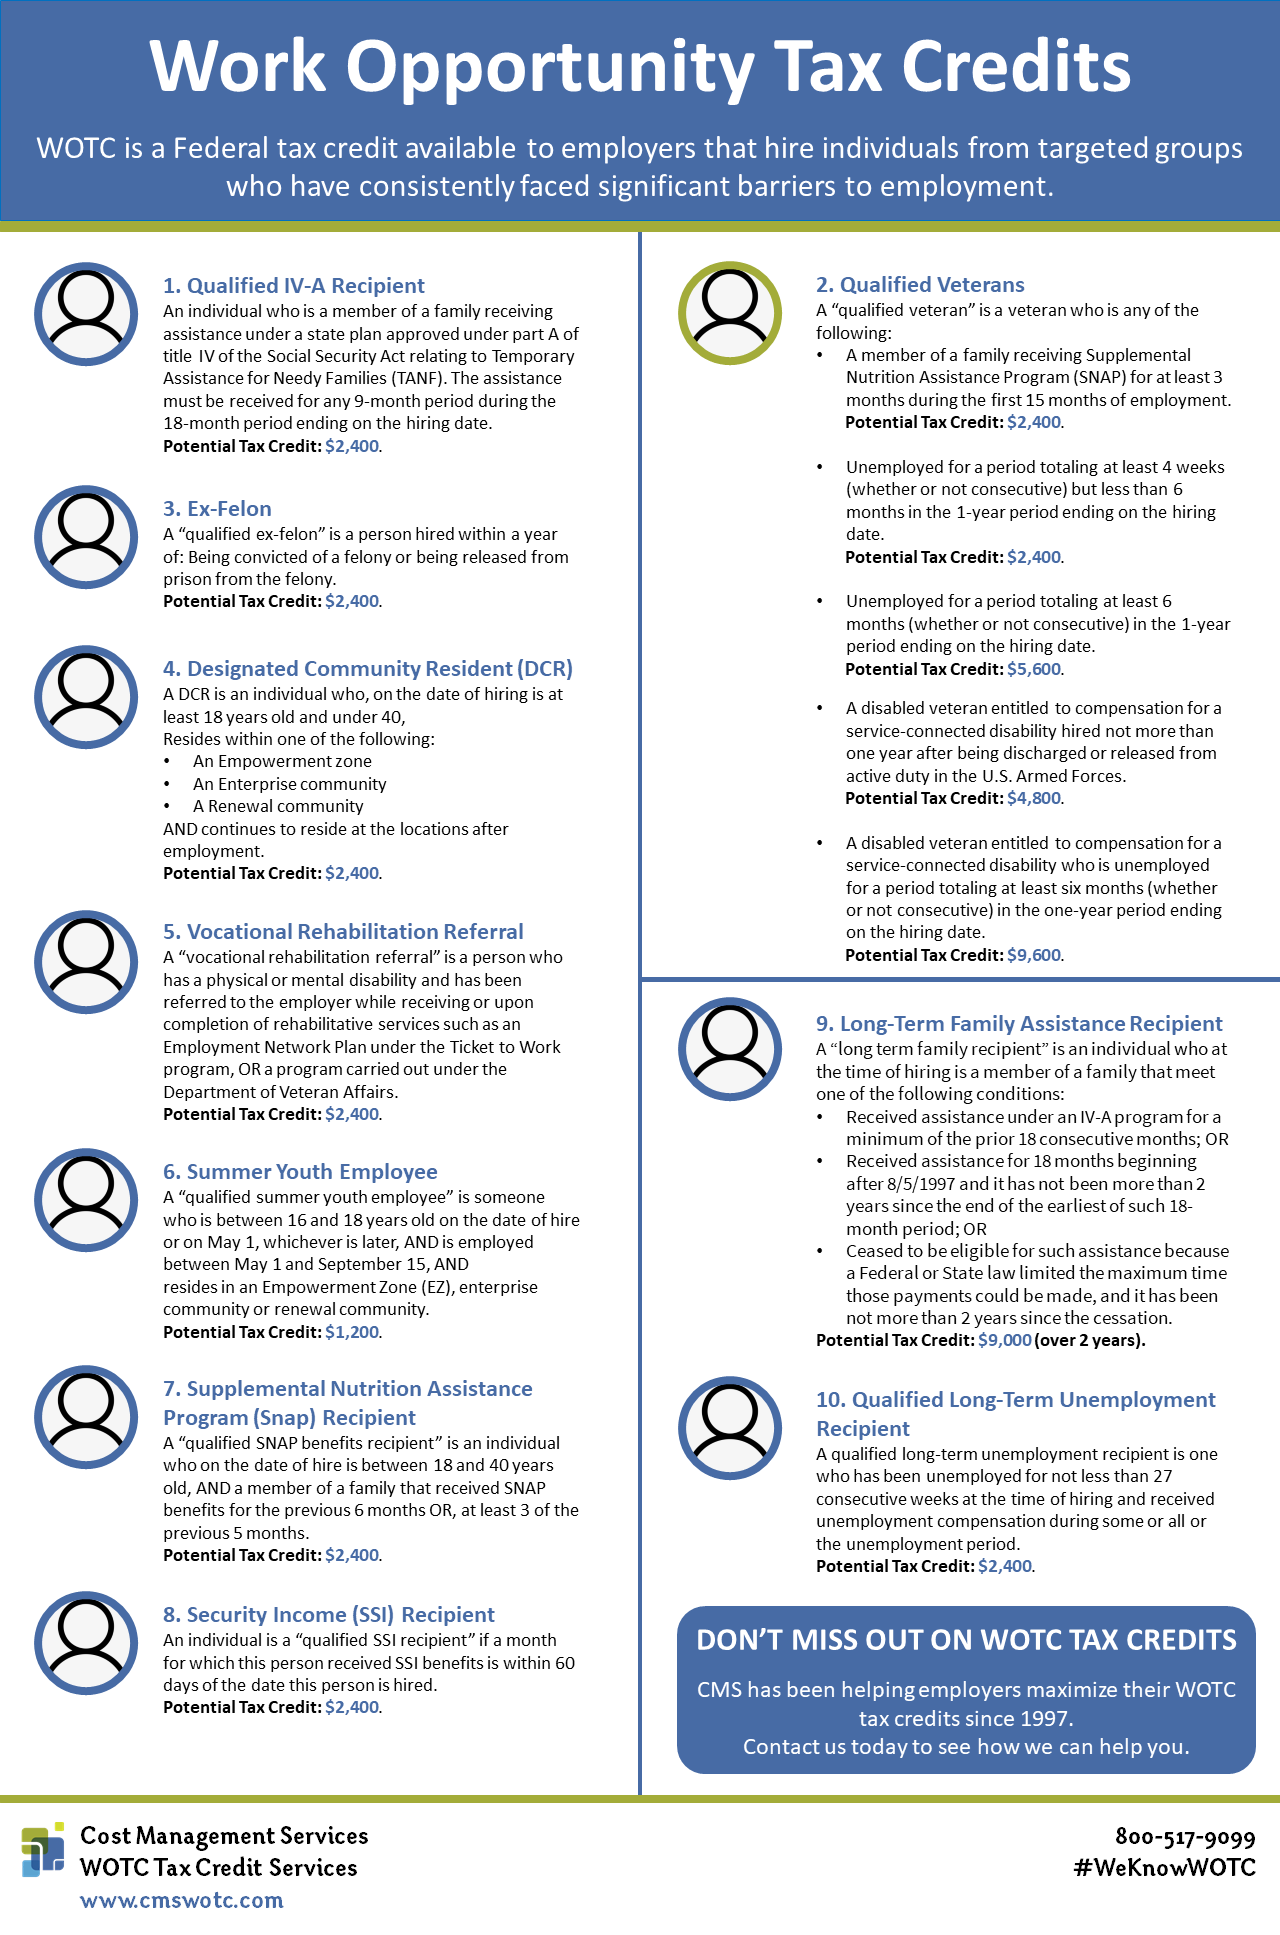 Work Opportunity Tax Credit Target Groups Infographic